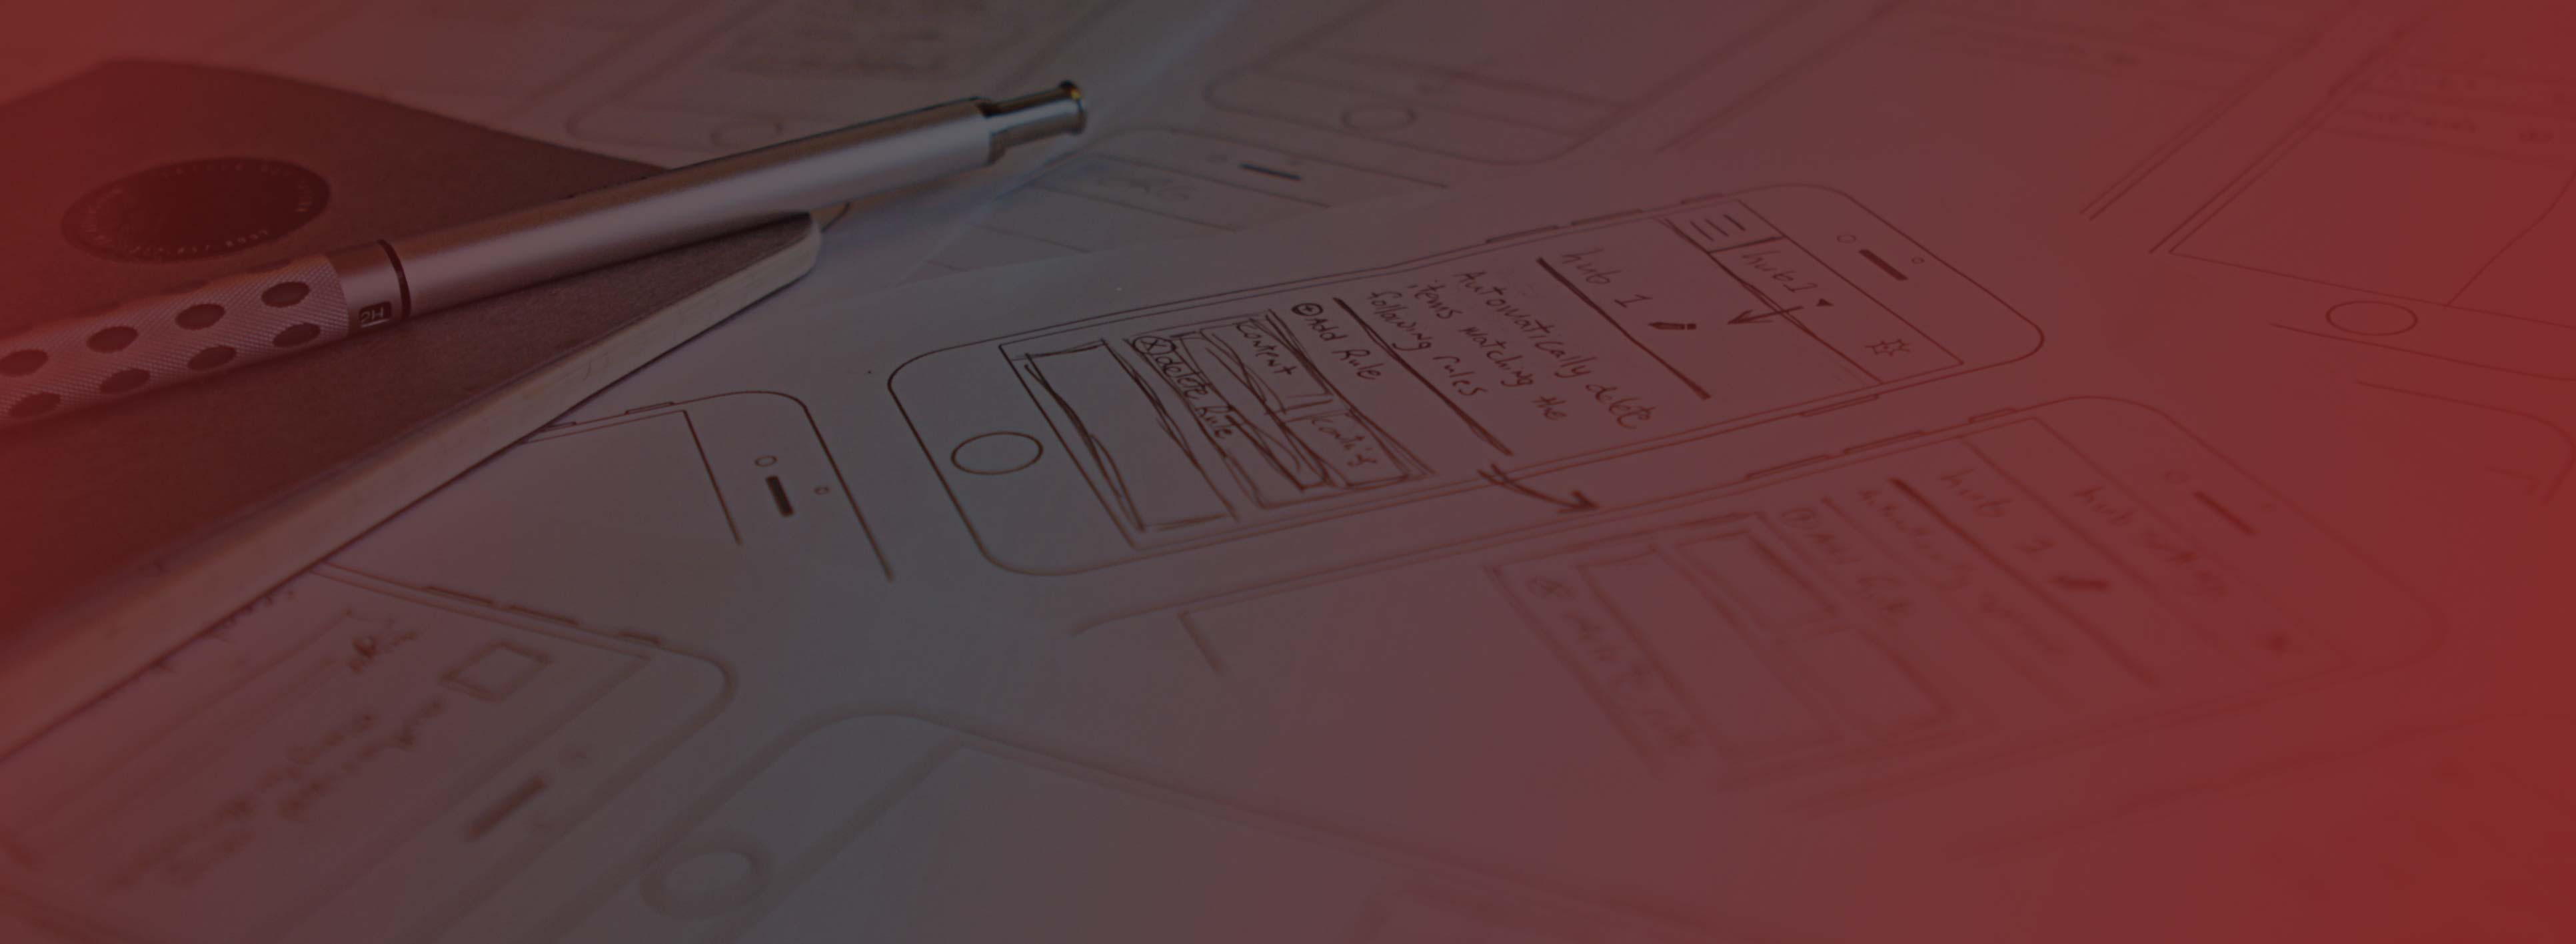 4 Reasons to Use High Fidelity Designs Early in a UX Process